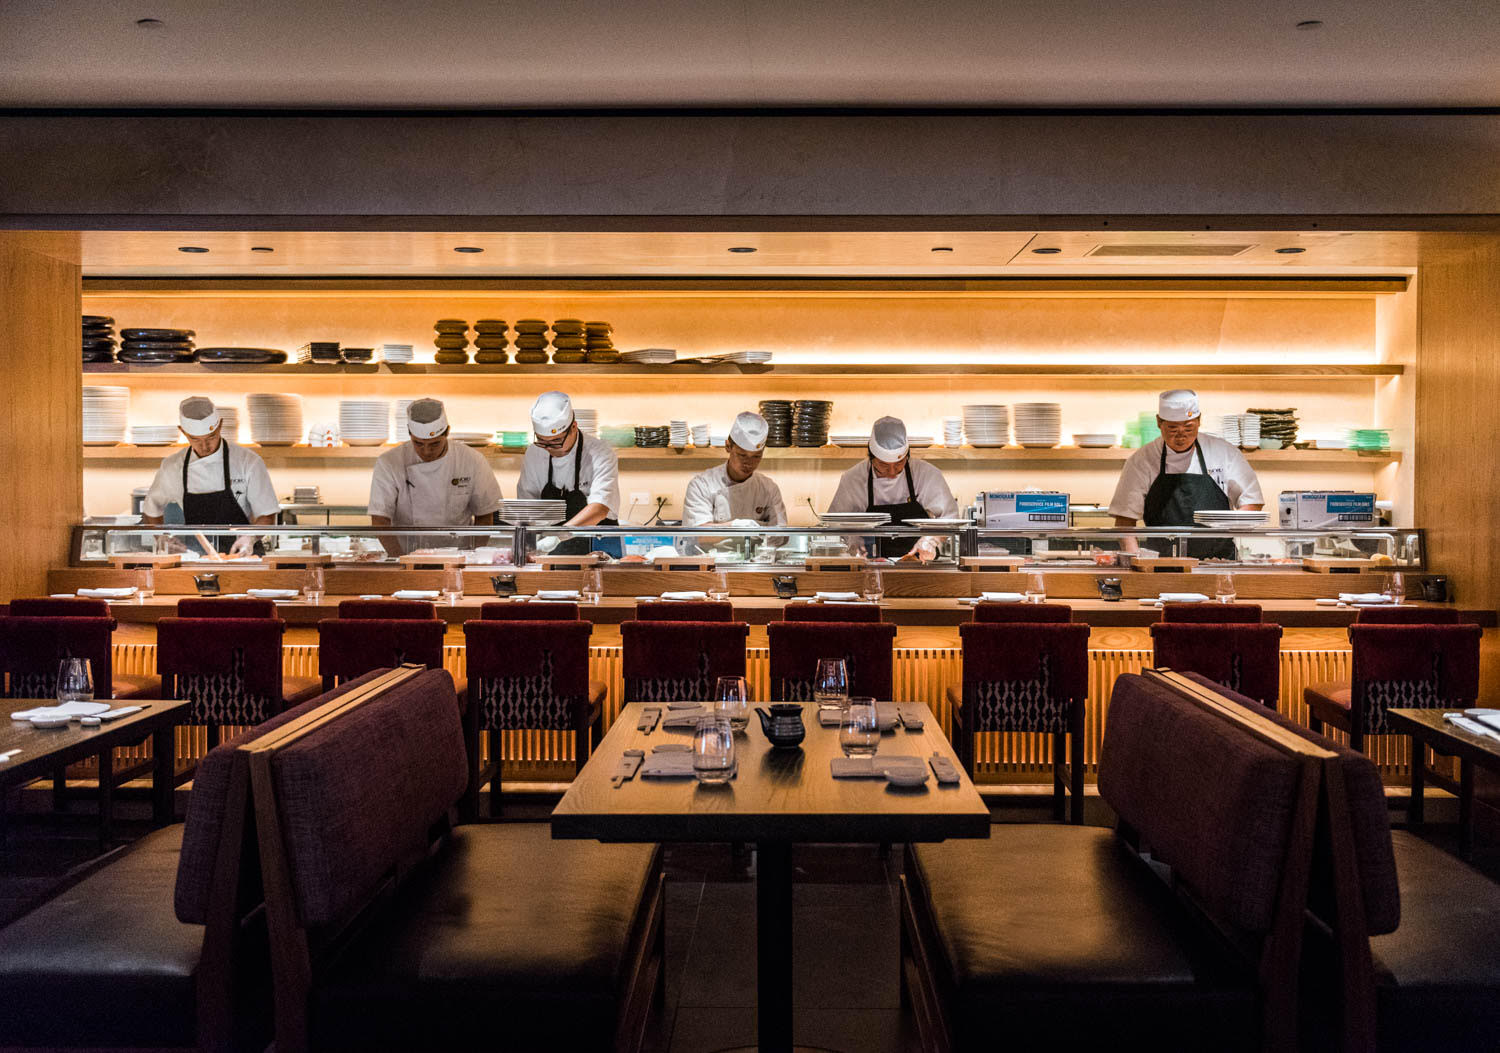 D c s debut nobu touts classic dishes promises more to